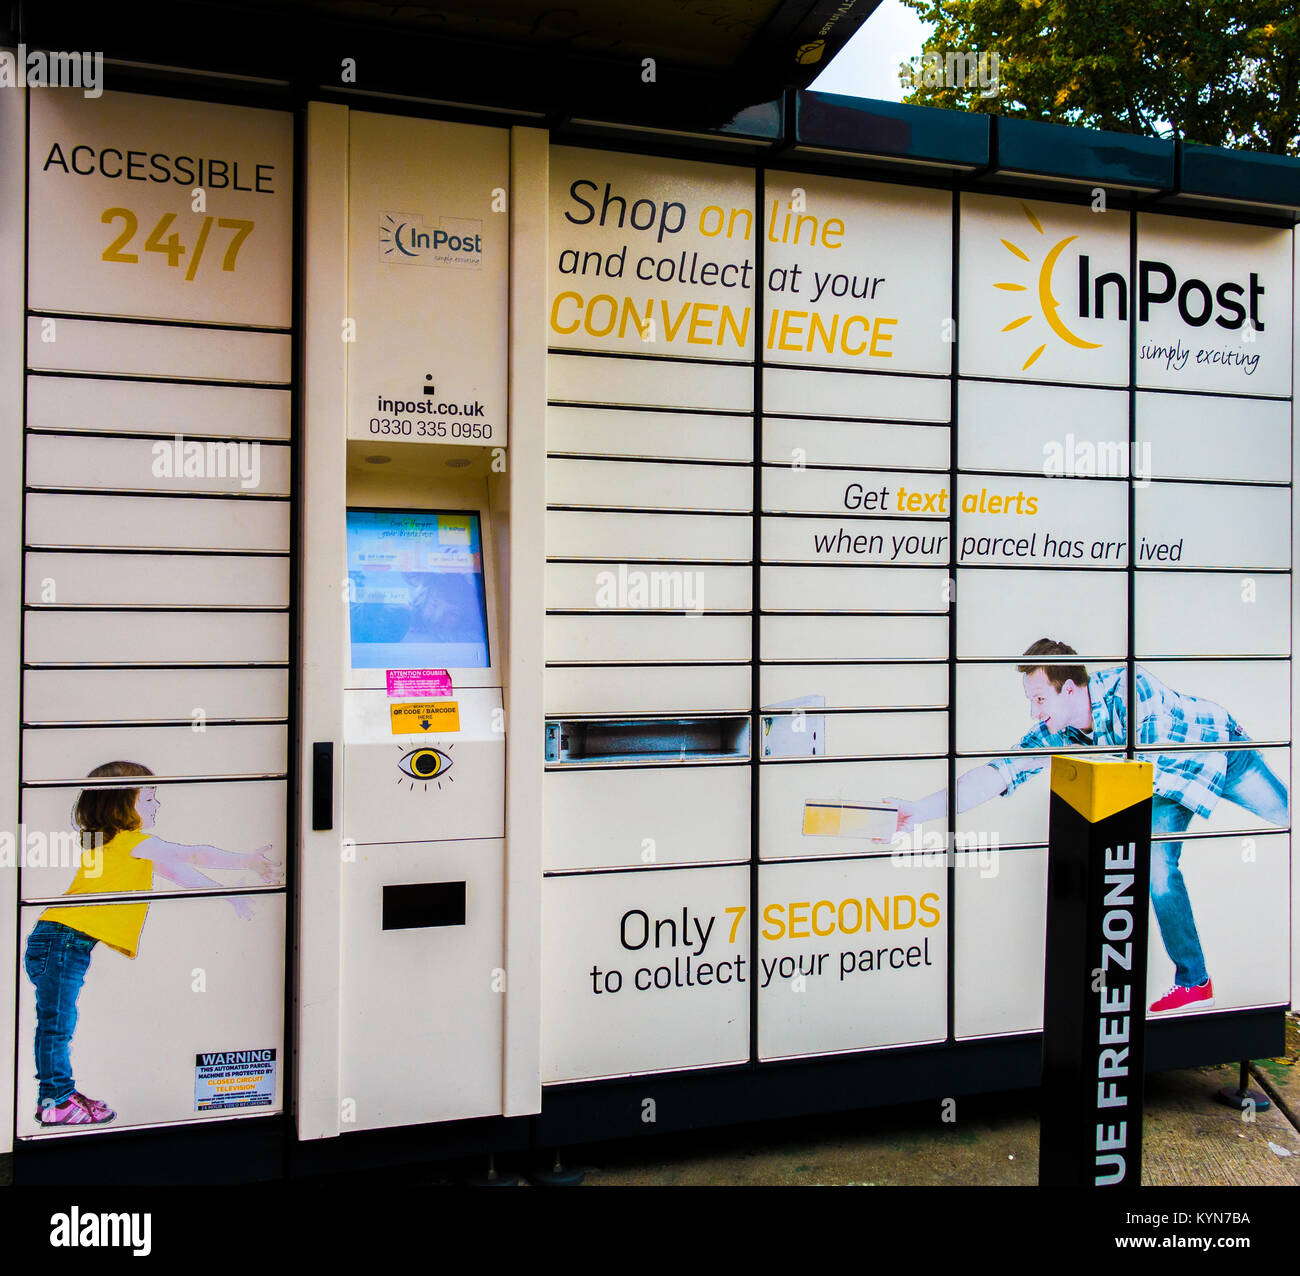 InPost parcel locker (national network click and collect delivery service, accessible 24/7) in South Ealing, London - Stock Image